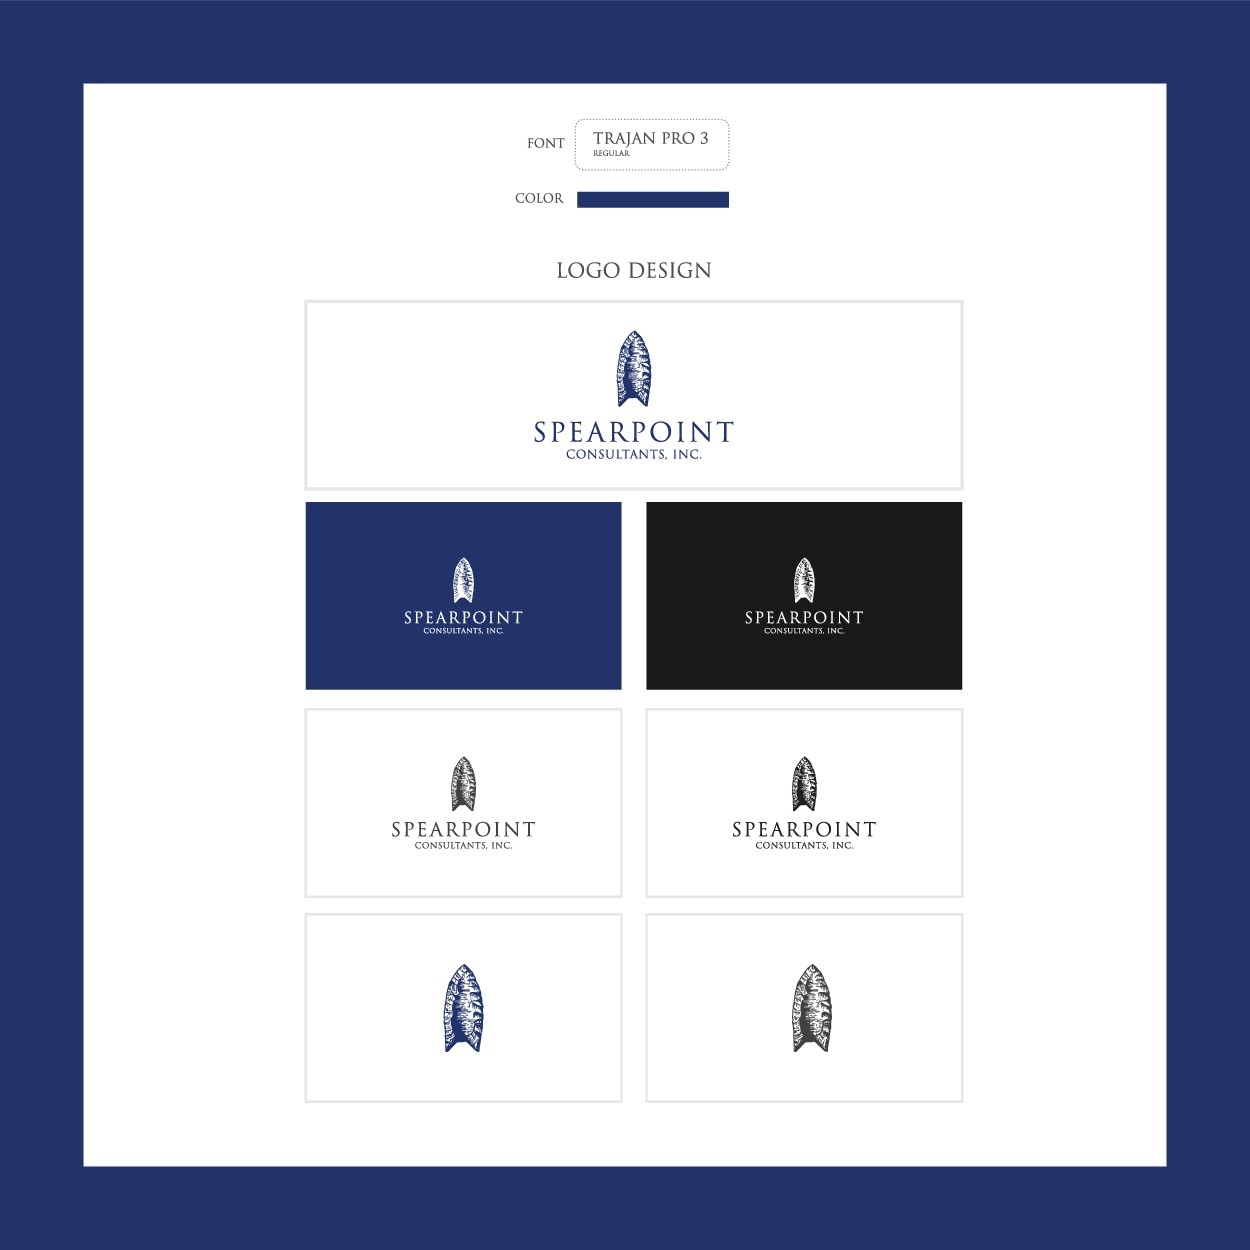 Boutique Project Management and Consulting Firm Seeks Simple, Elegant Branding